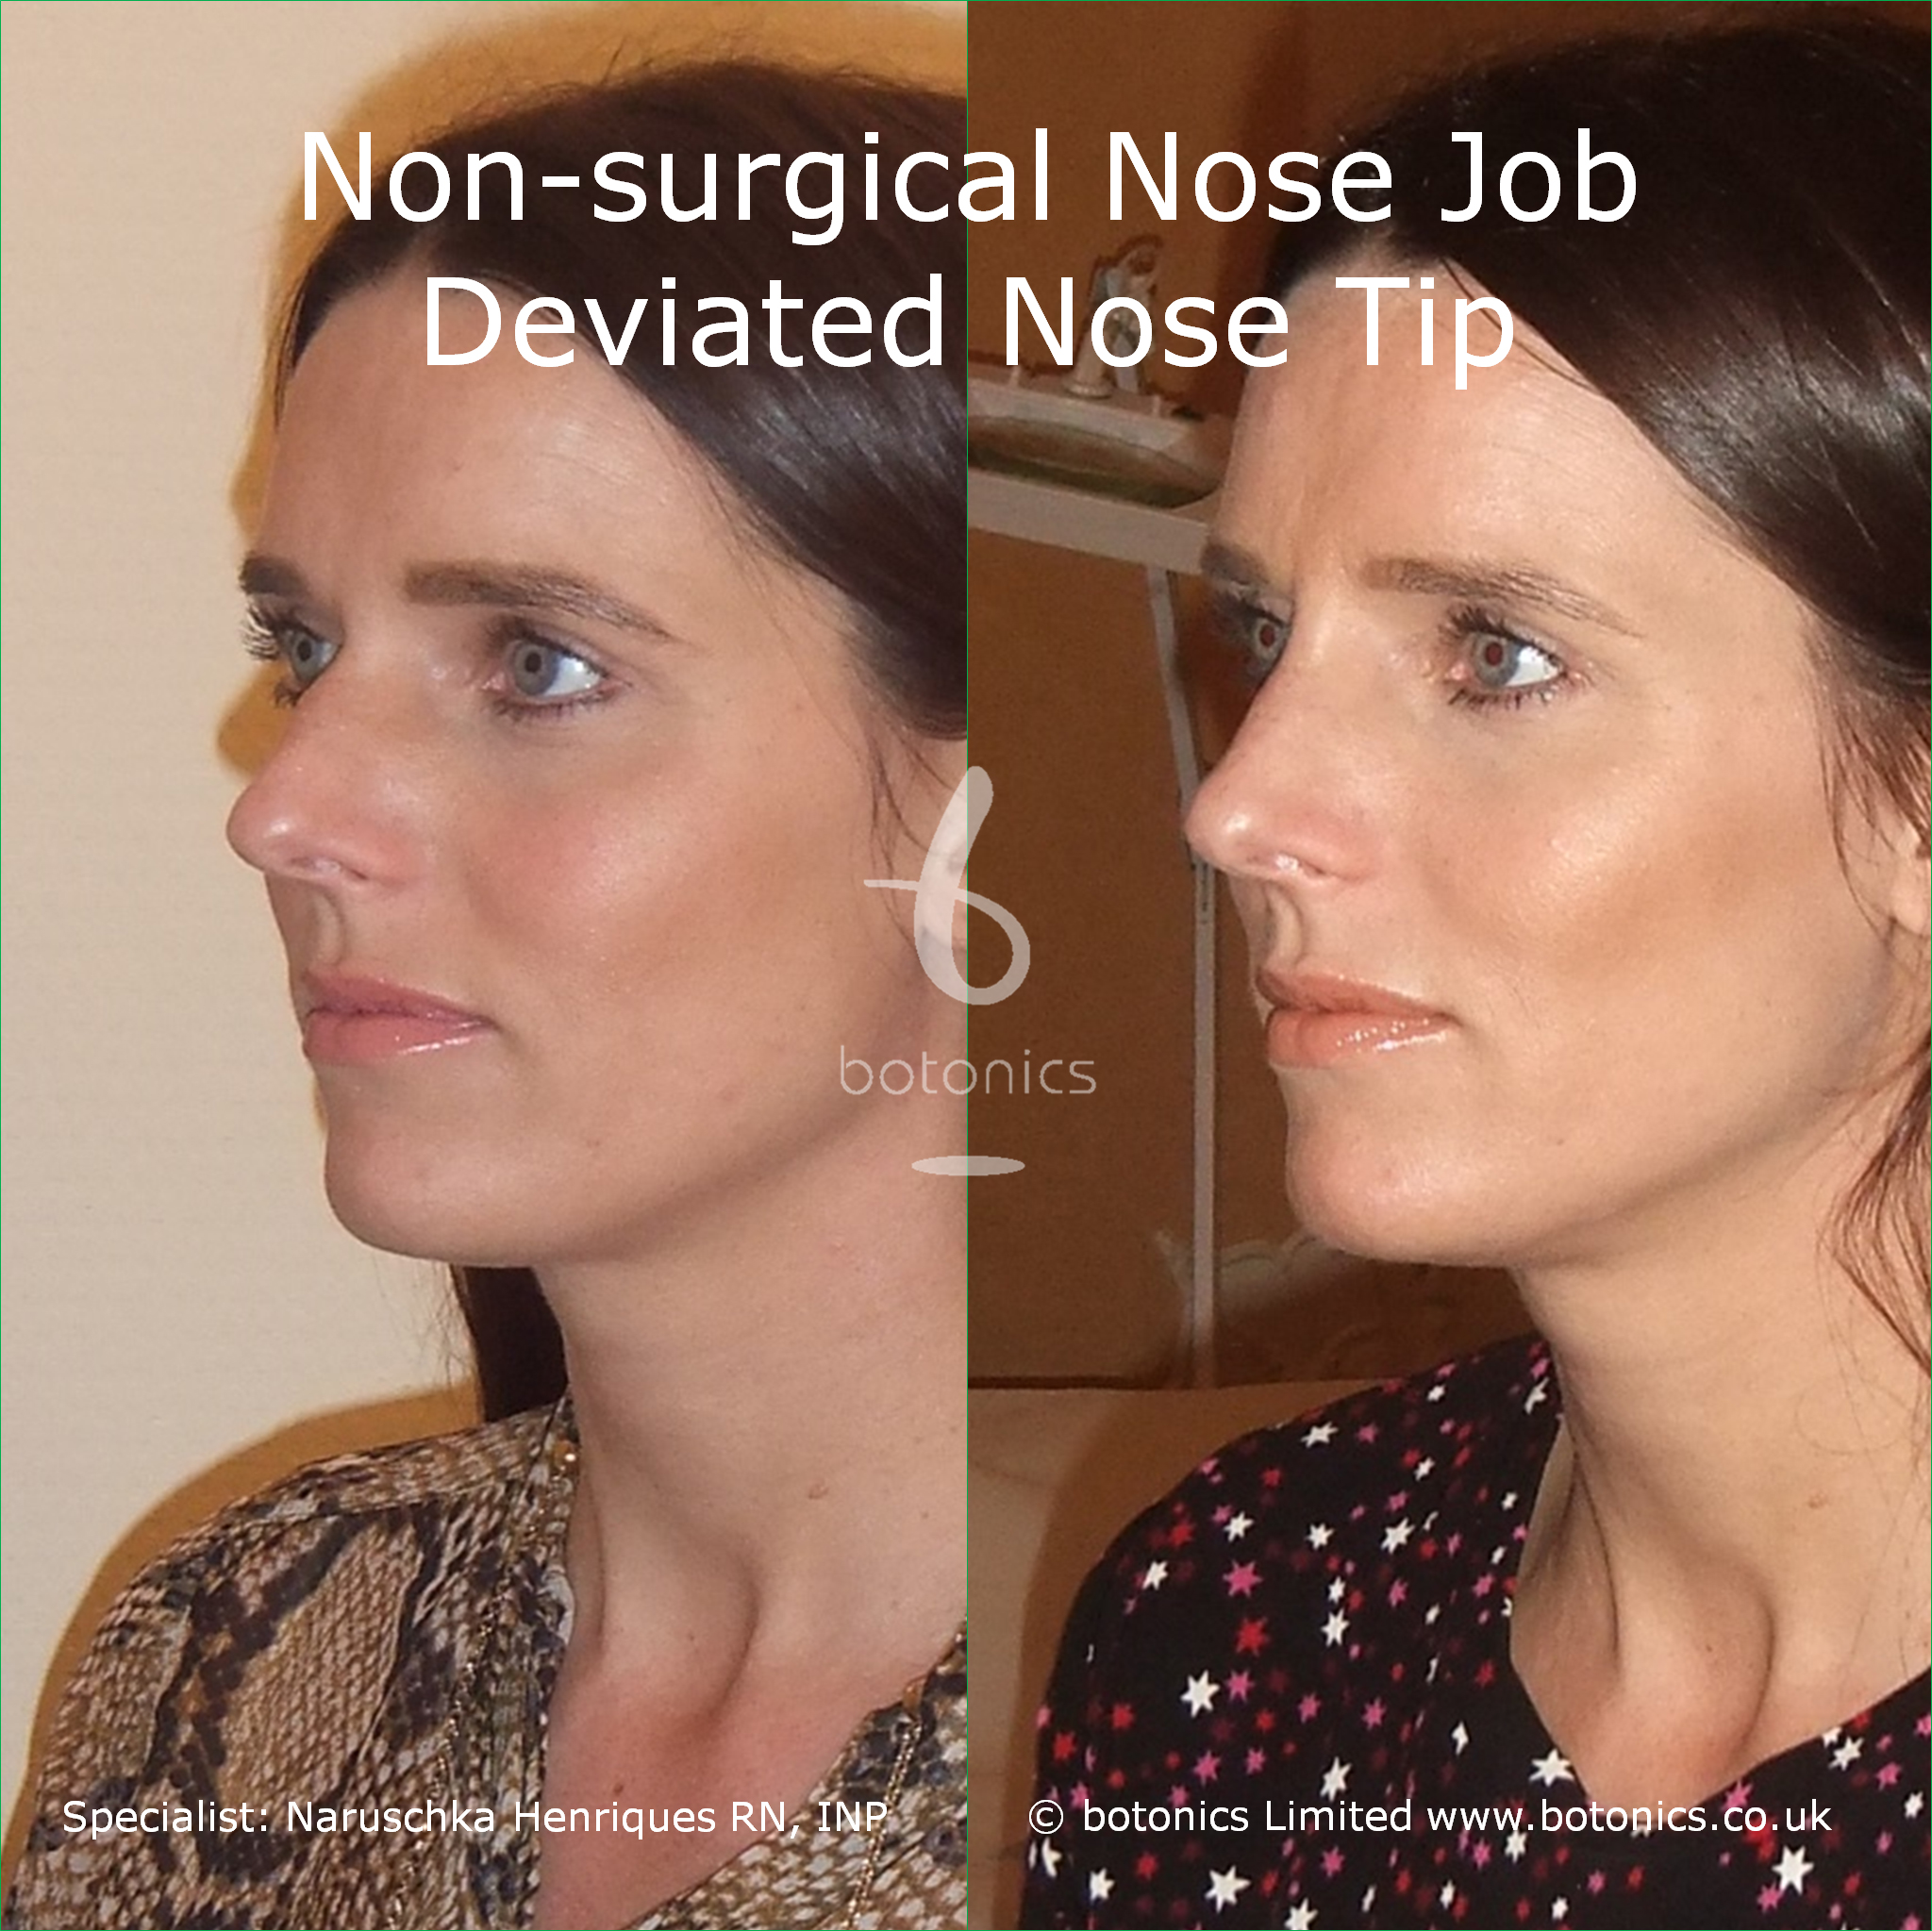 Non-surgical Nose Job Before and After Pictures - botonics